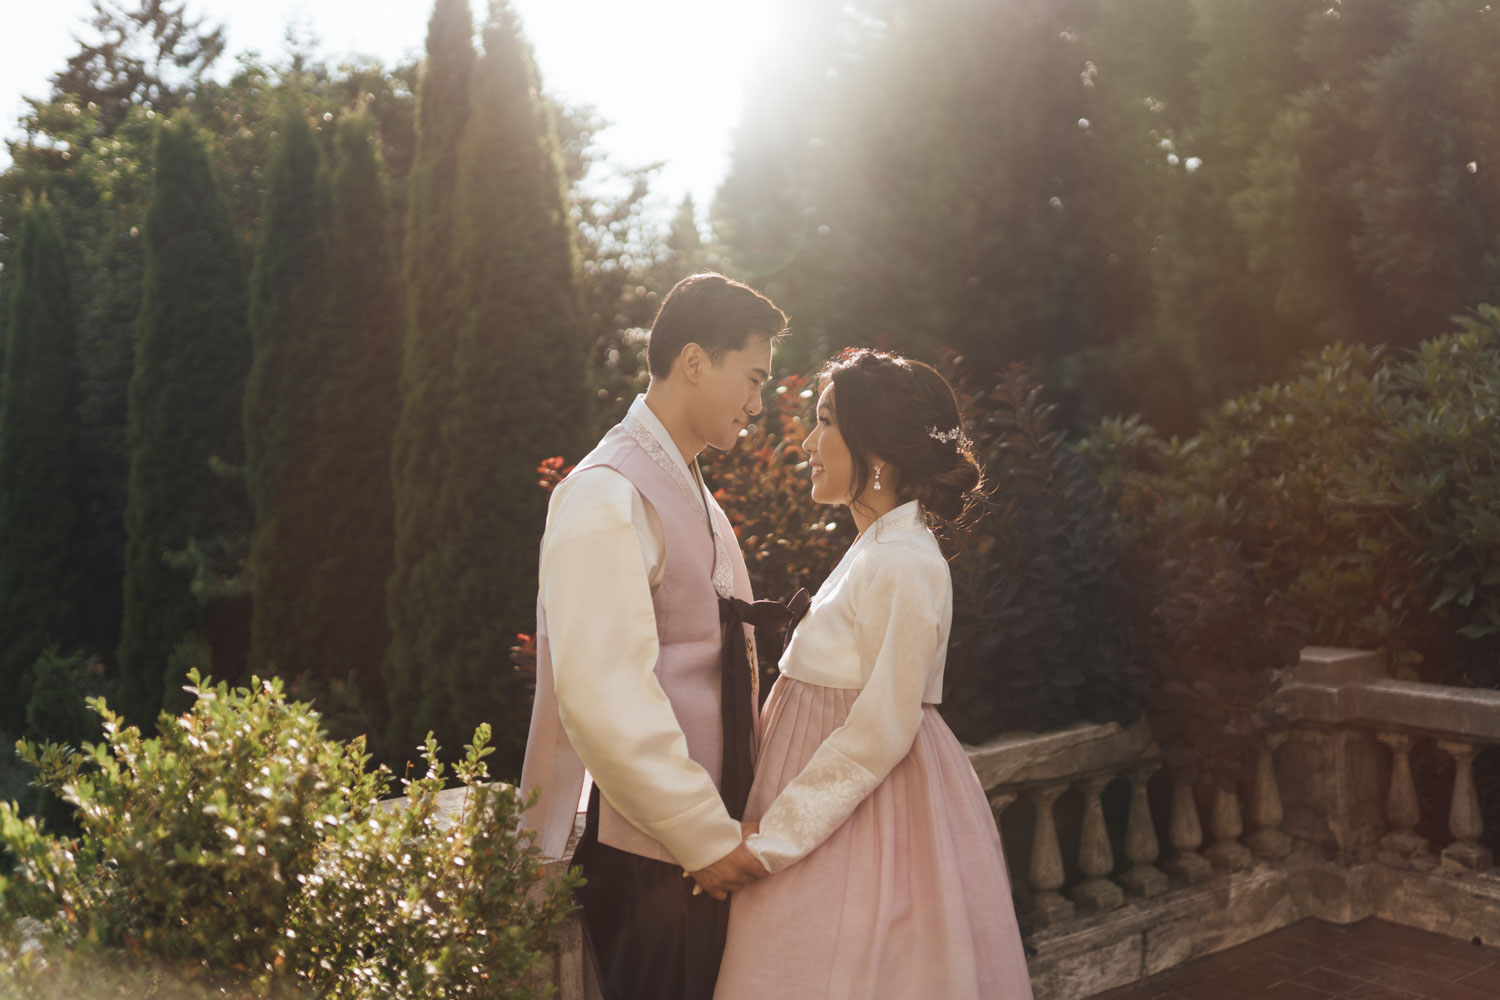 korean vancouver wedding photography at hycroft manor during summer